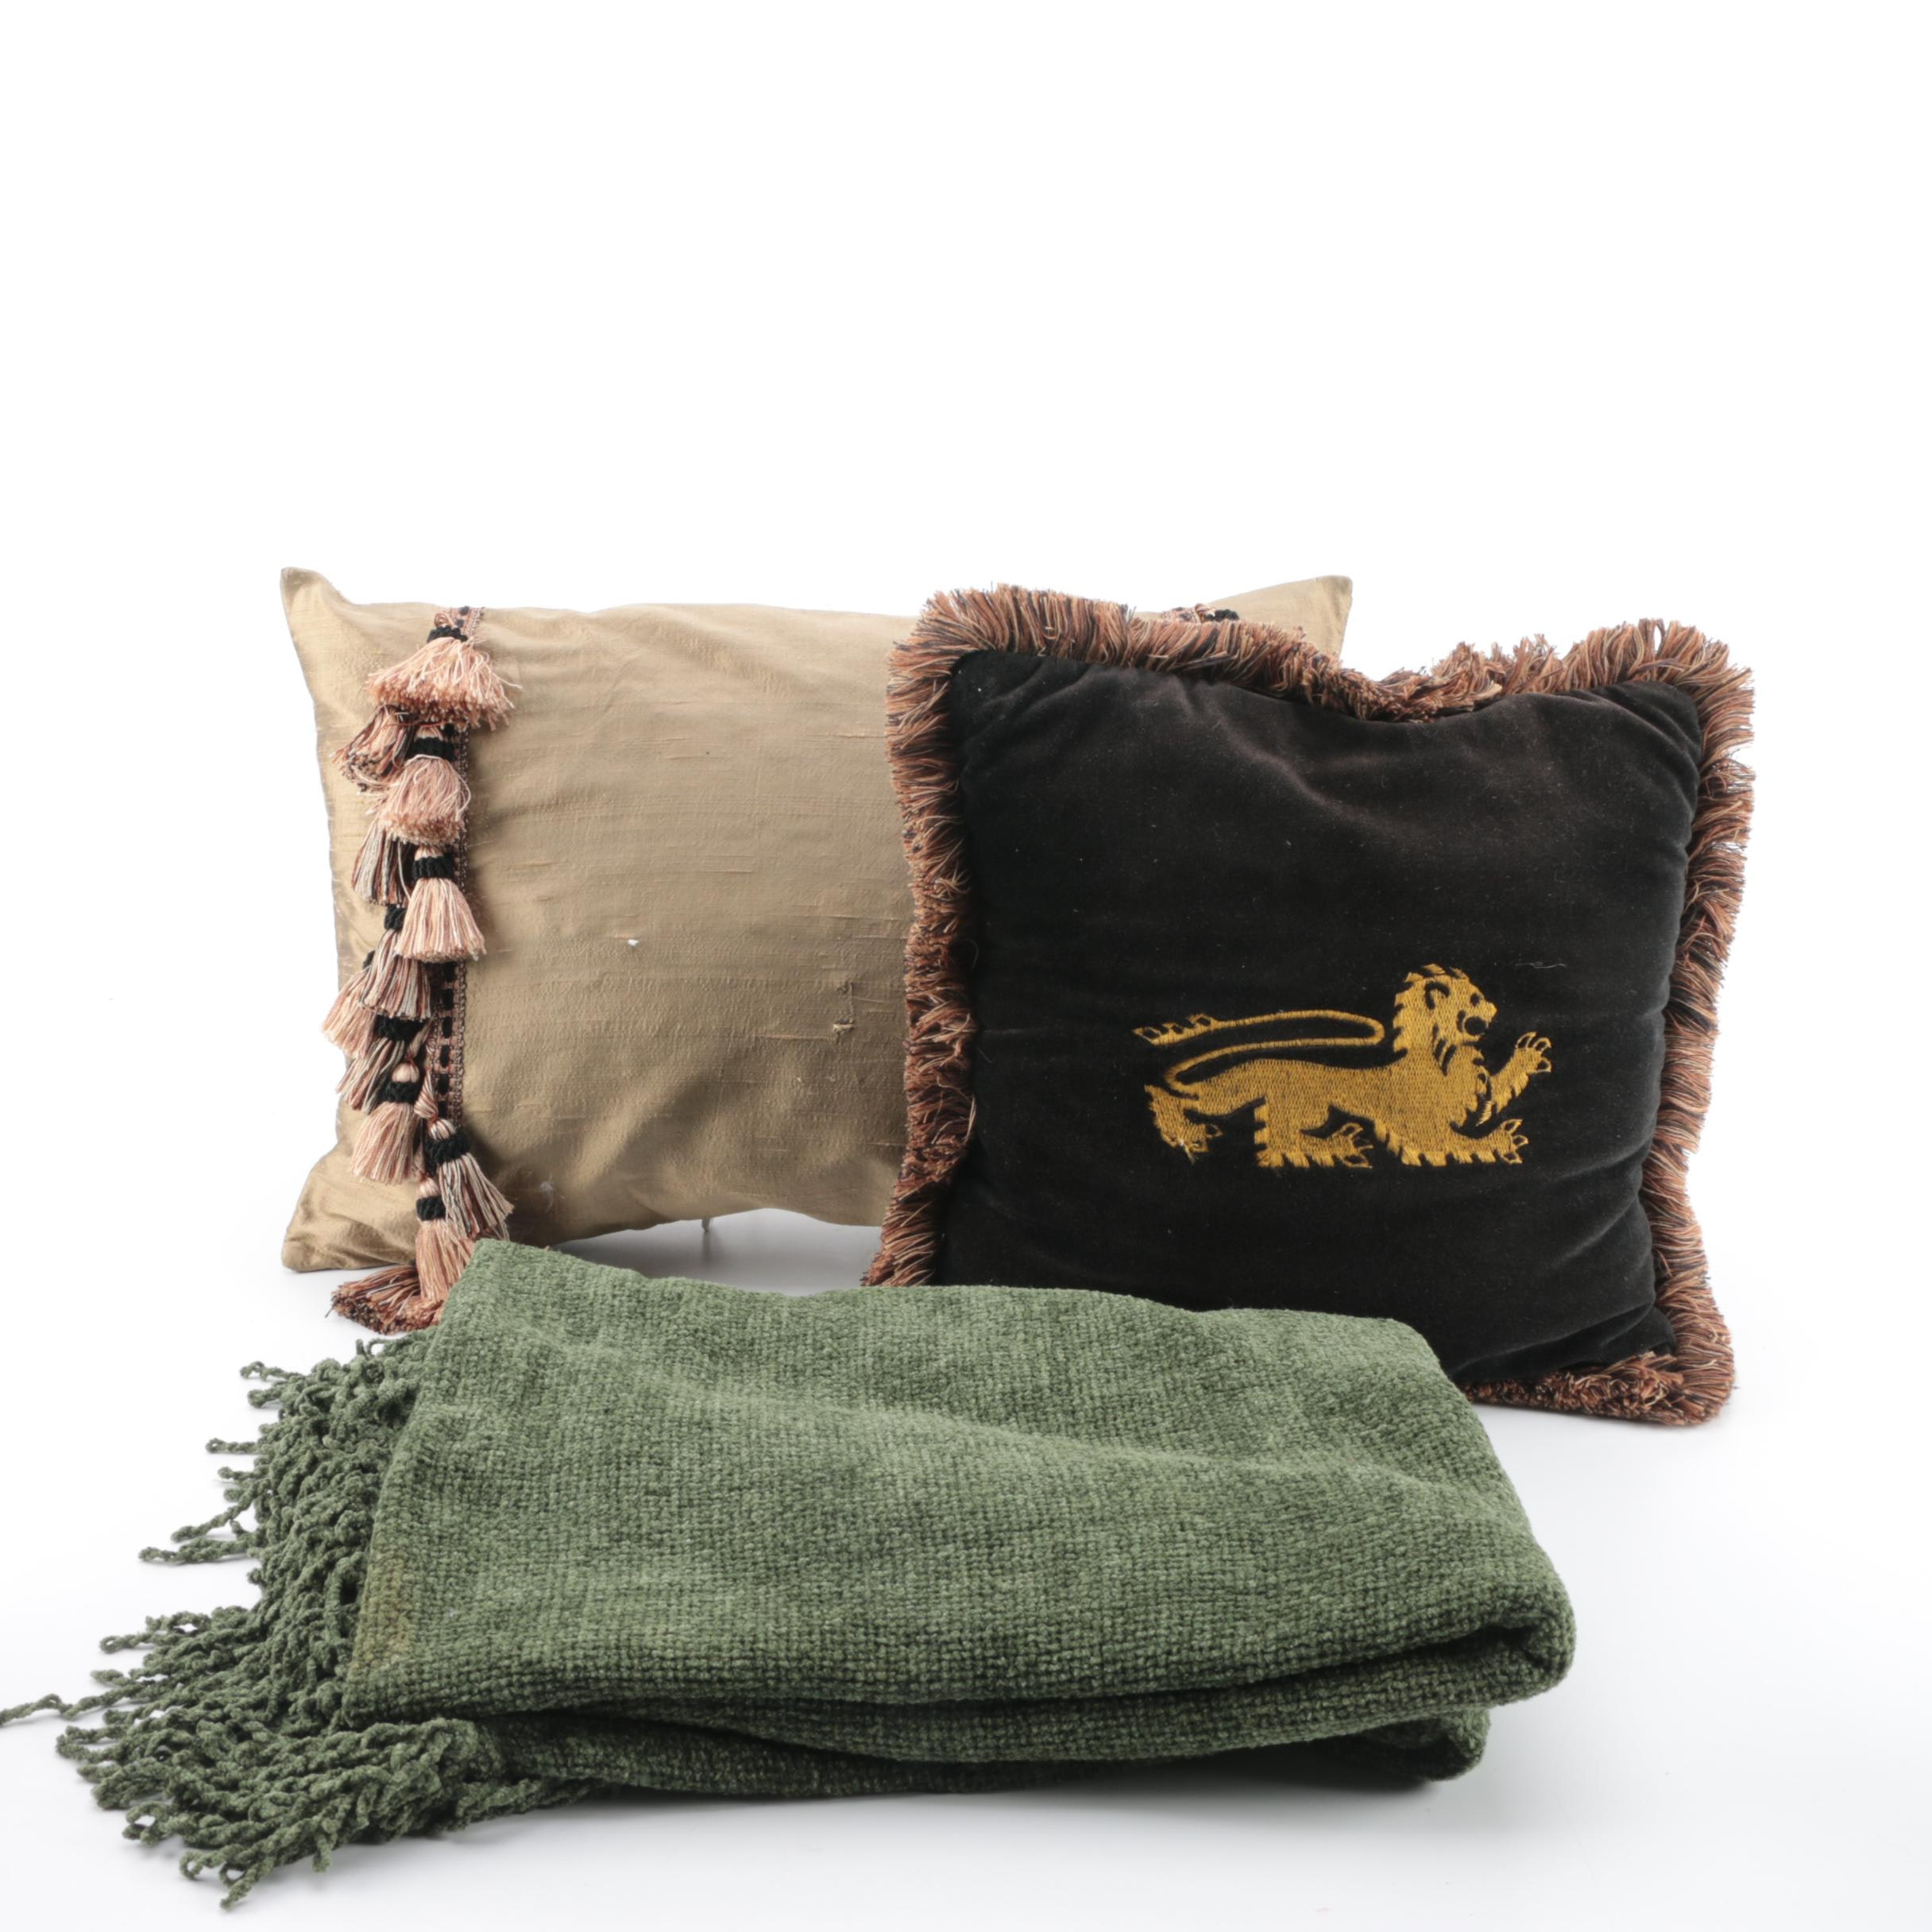 Collection of Decorative Throw Items